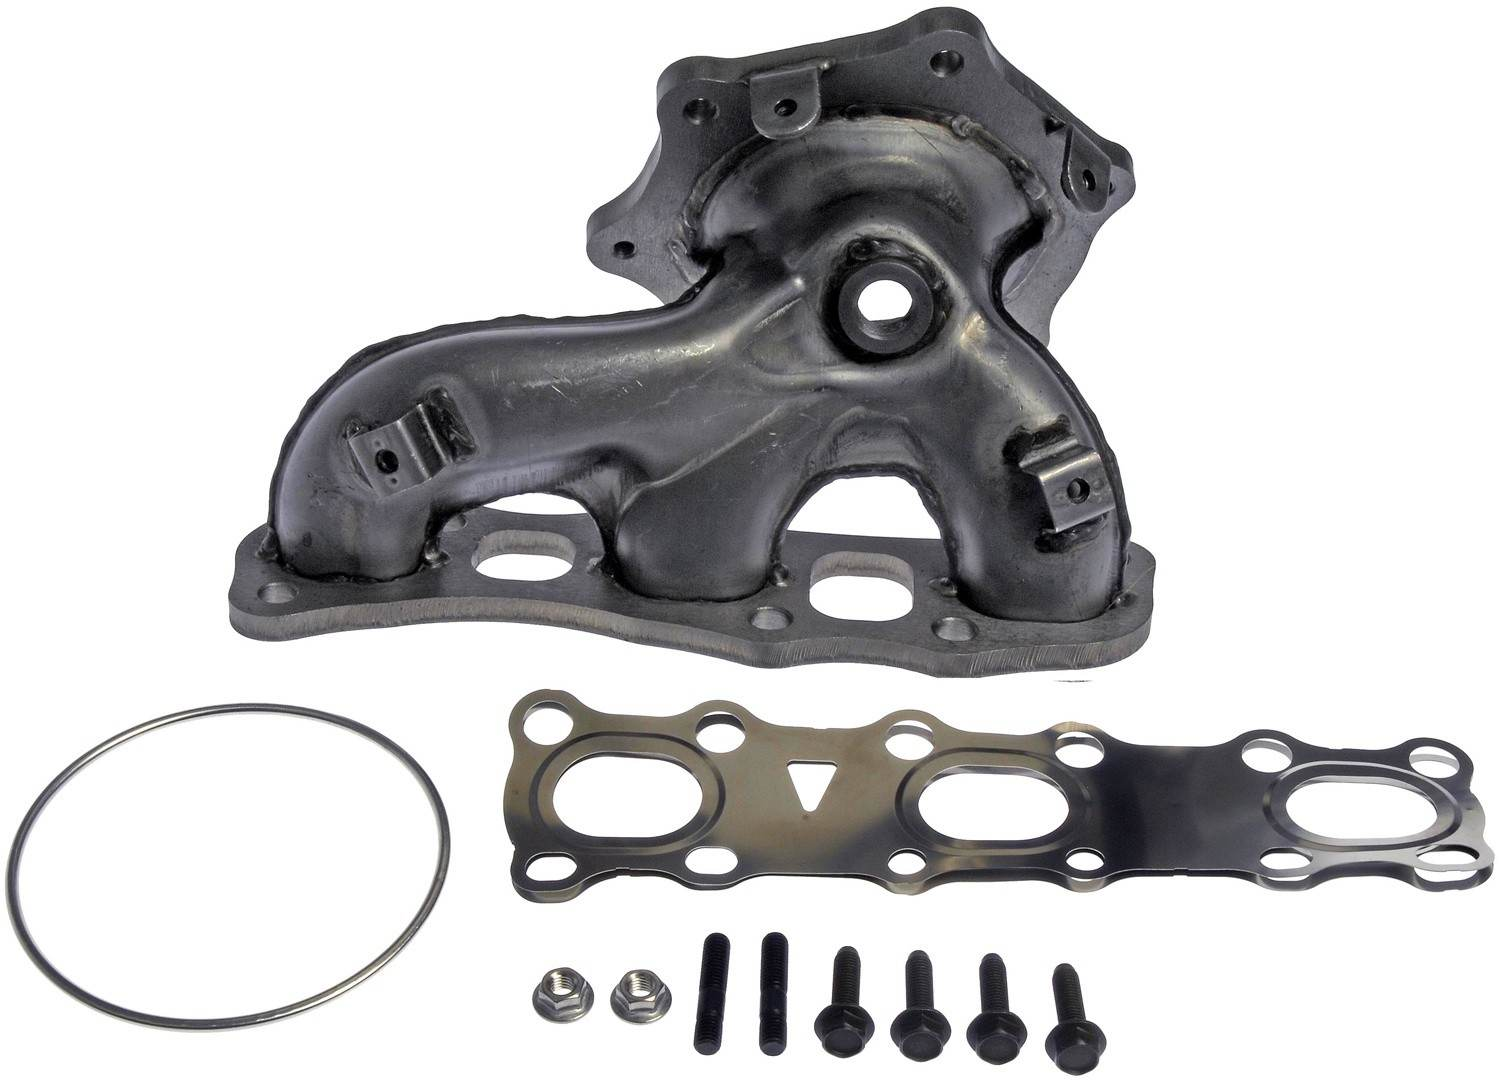 Exhaust Manifold Fits 2007-2009 Nissan Altima Maxima